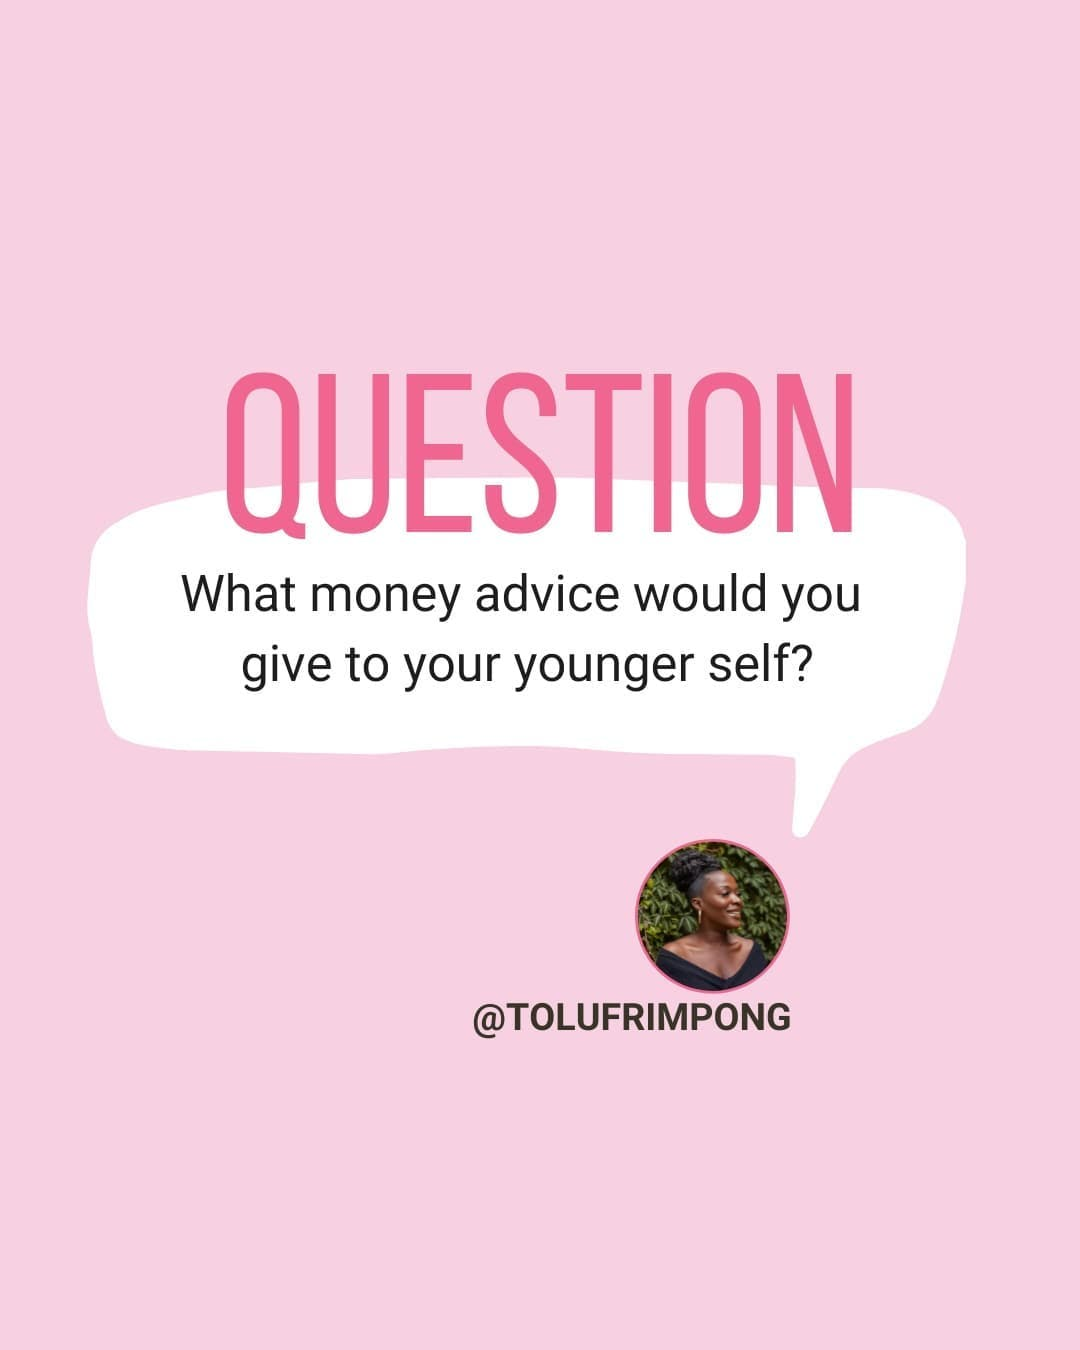 There's so much I would tell her (though I doubt she would listen 😂)  I think top of the list would be, just becuase it's within your means, it doesn't mean you need to buy it. Be intentional with where and how you spend your money.   What money advice would you give to your 21 year old self?  LIKE ❤️⠀⠀ COMMENT ⬇️🔥⠀ TAG A FRIEND 🐻⠀ 👉🏿Follow @tolufrimpong for more money-saving tips and motivation👈🏿 . . . . #personalfinanceuk #moneyadvice #moneymotivation #blackpfcommunity #debtfreecommunityuk #ukdebtfreecommunity #debtfreecommunity #debtfreelifestyle #debtfreeblackgirl #debtfreeuk #financialwellbeing #intentionalfinance #financeforwomen #letstalkmoney #financetalk #livebelowyourmeans #financialwisdom #moneycoach #moneysavingtips #millenialmoney #moneymotivation #journeytofinancialfreedom #journeytomortgagefreedom